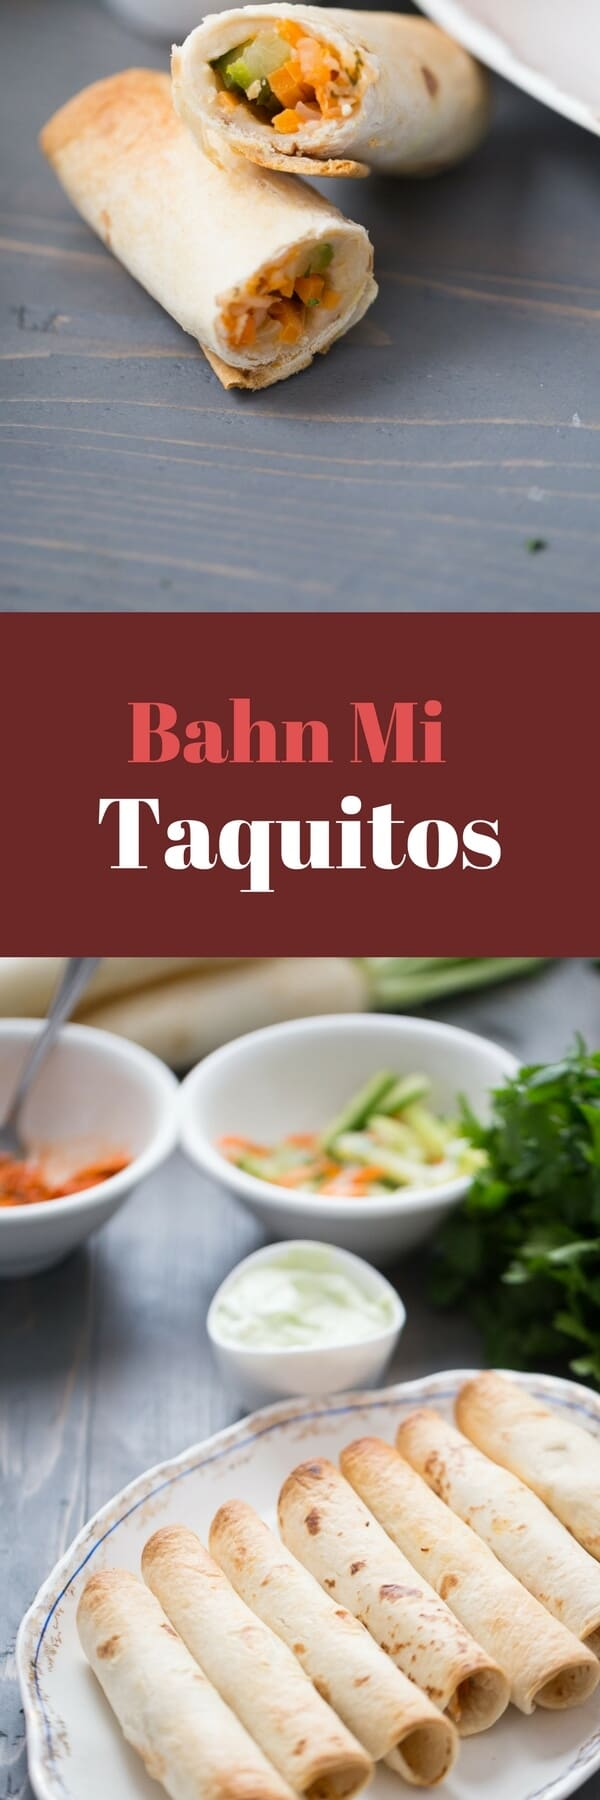 East meets west in these Bahn Mi Taquitos! Salmon and fresh veggies make this recipe easy and delicious!